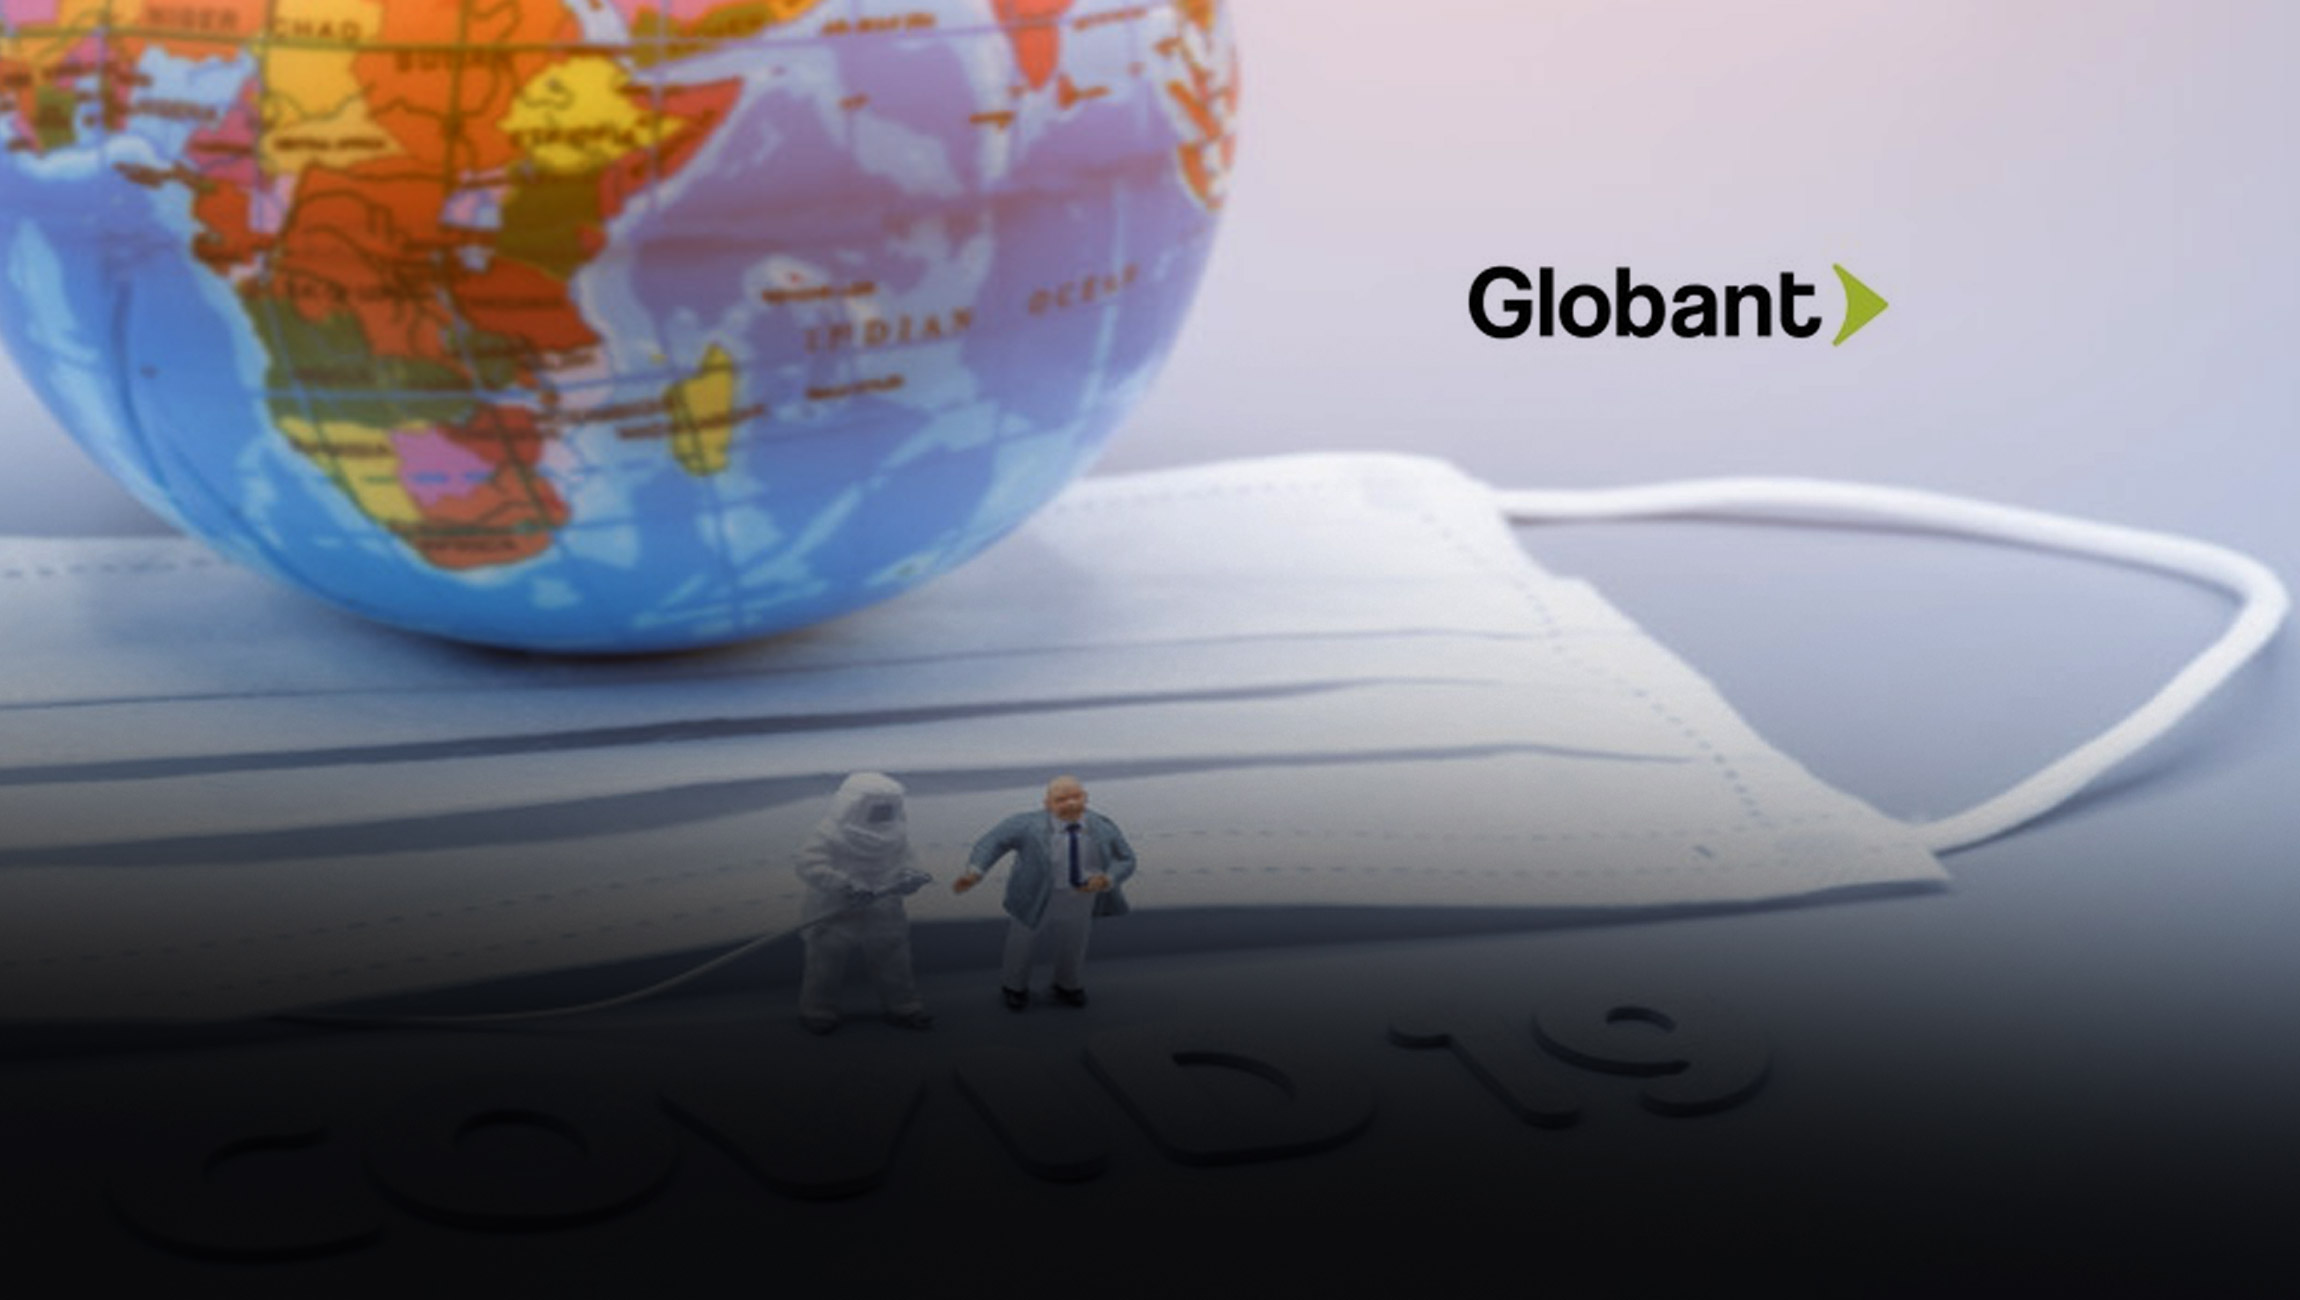 Globant Launches New Digital Sales Studio To Help Organizations Accelerate Sales And Win The Consumer's Cognitive Revolution